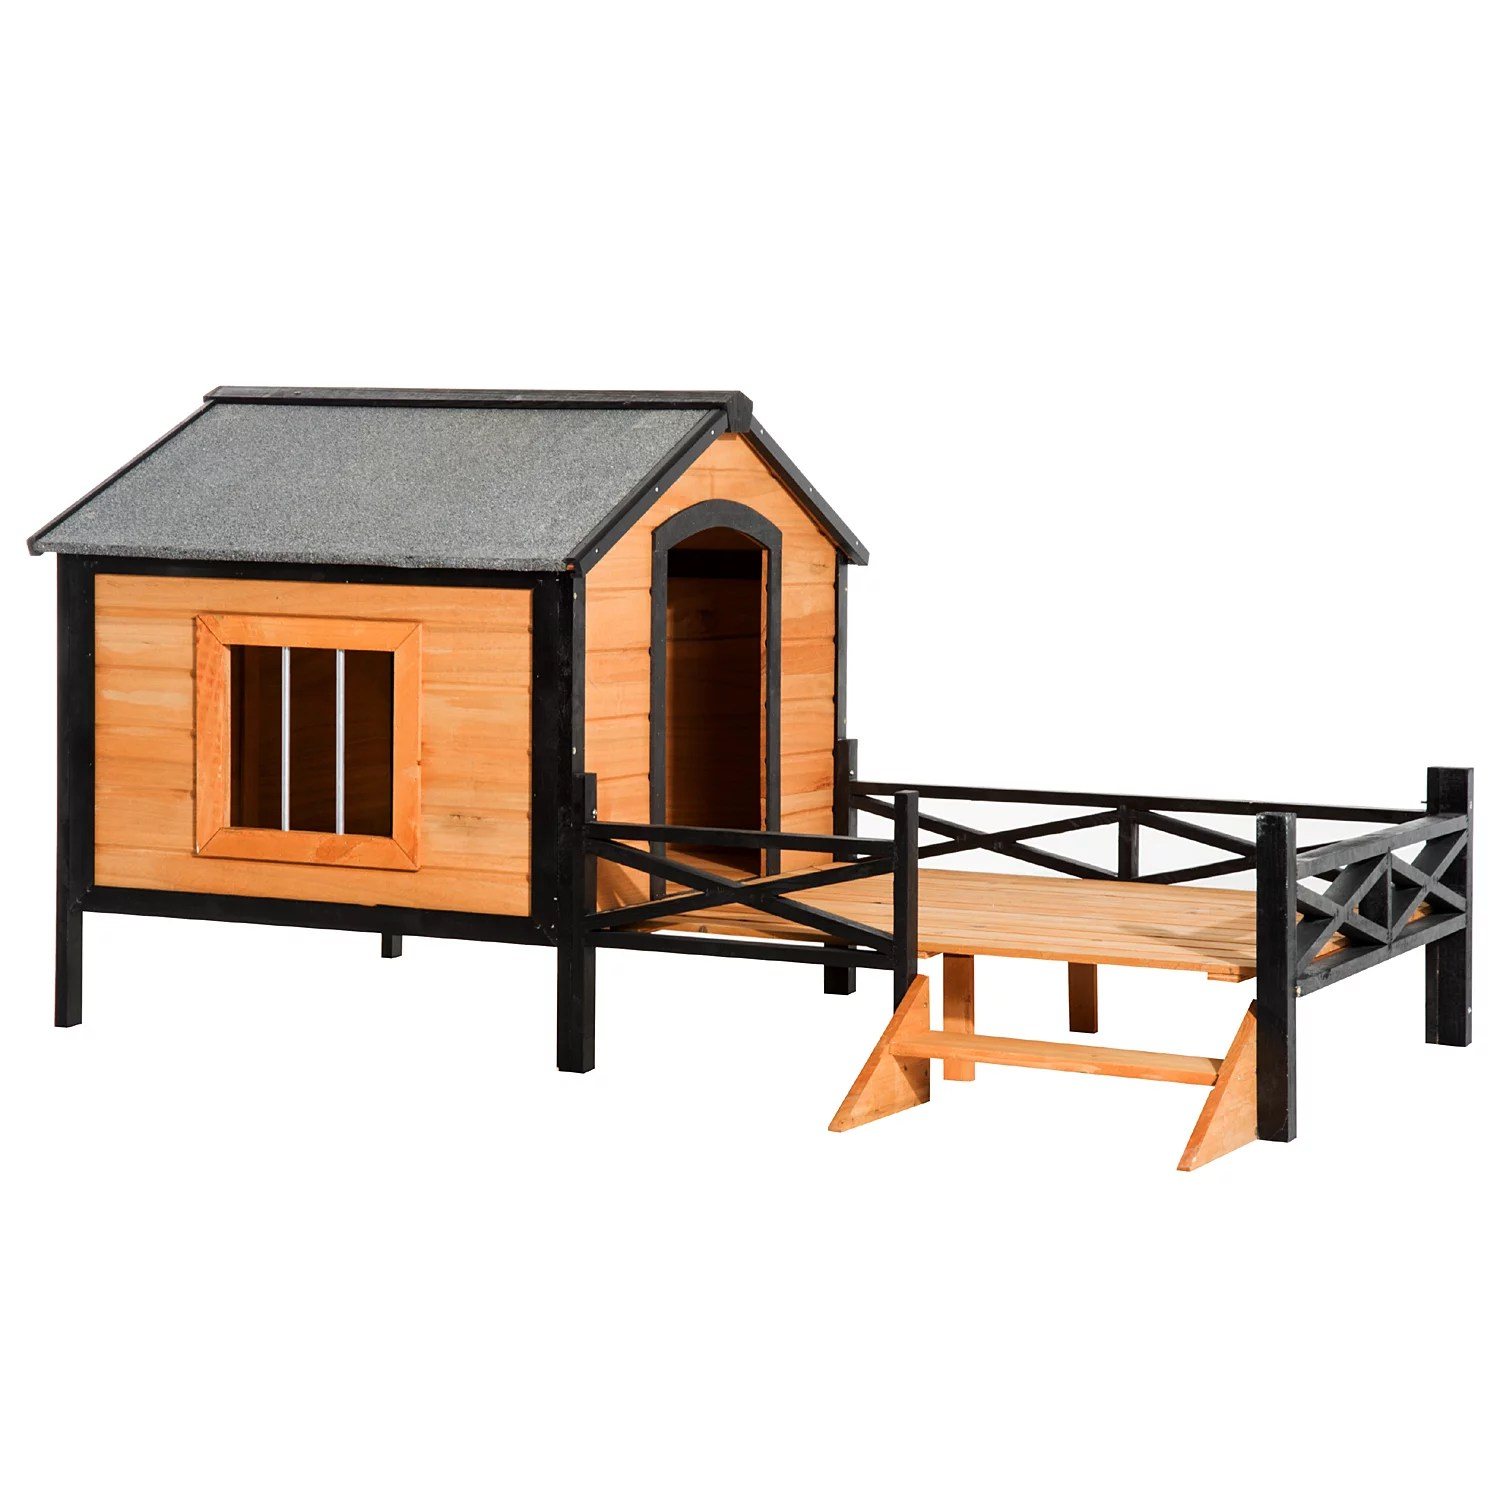 pawhut 67 large wooden cabin style elevated outdoor dog house with porch walmart com